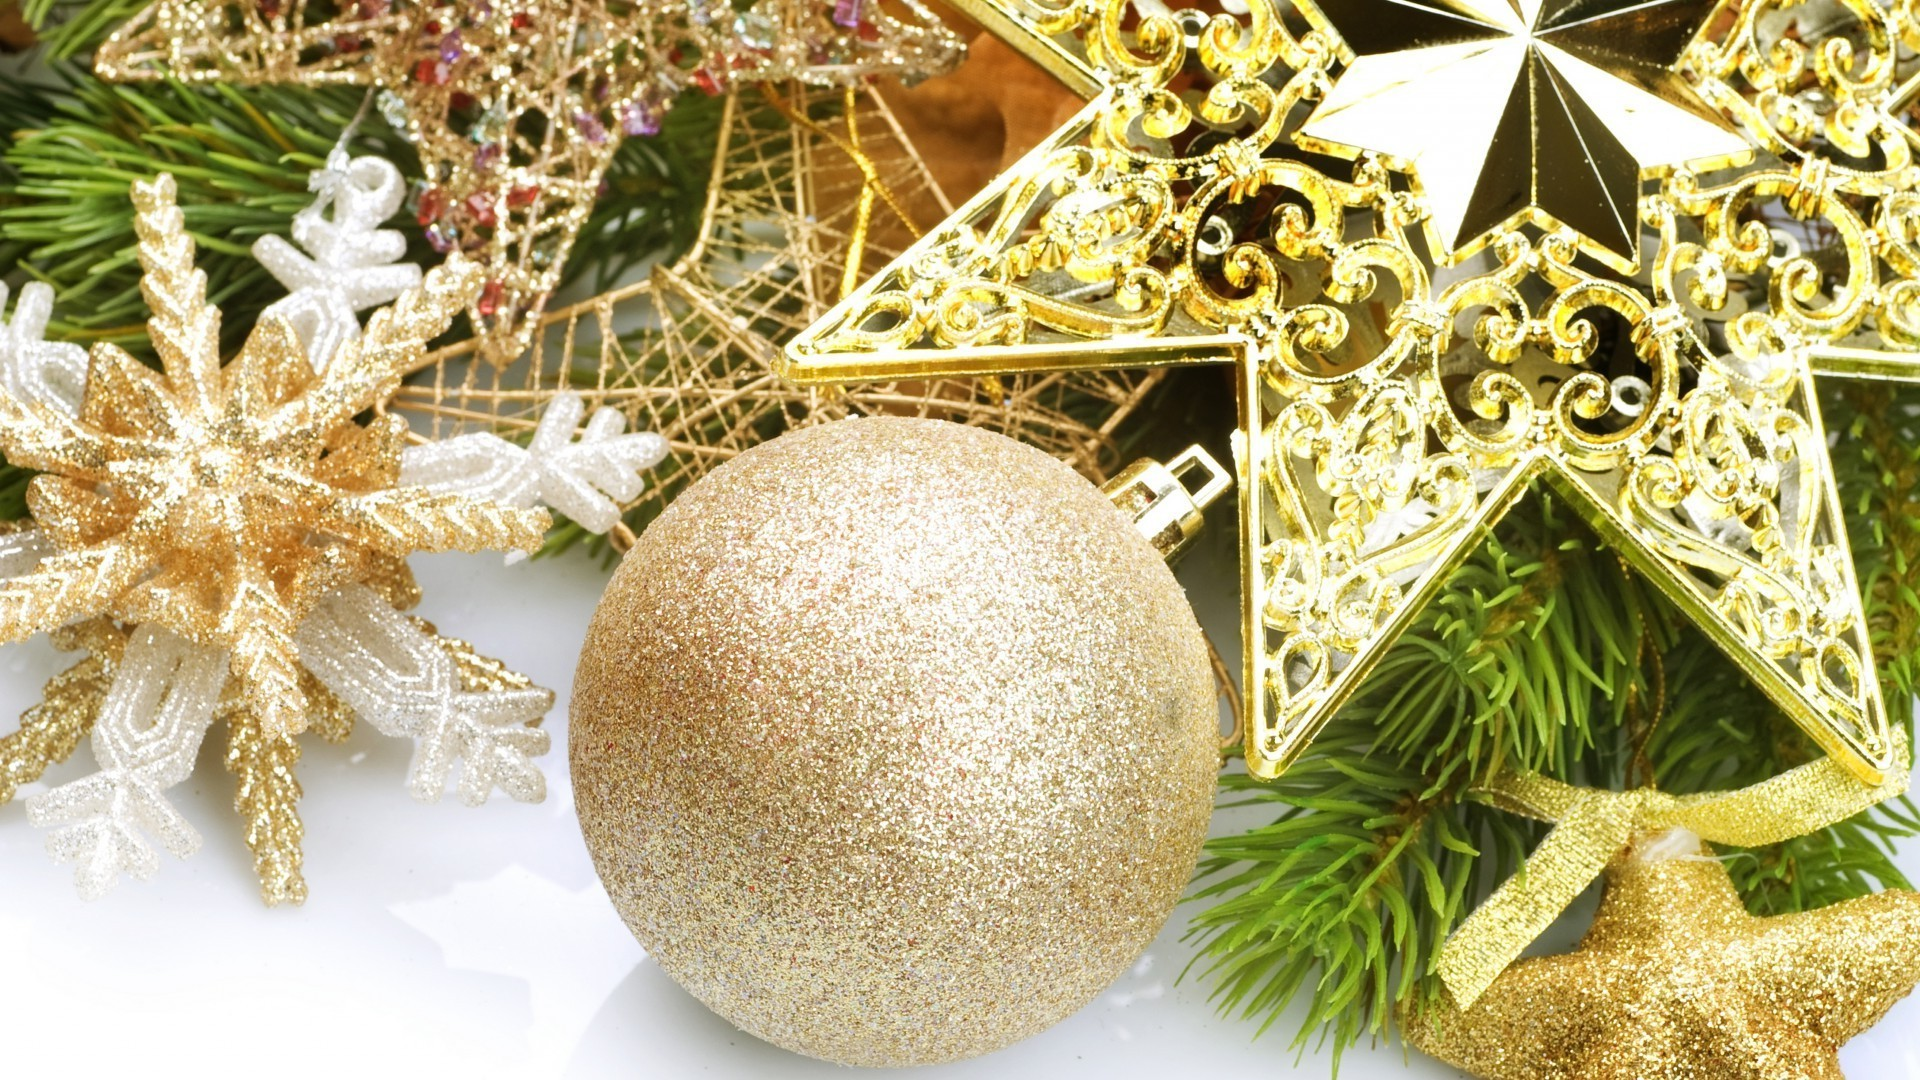 new year christmas decoration winter gold thread celebration shining ball glisten merry bow ornate bangle season gift tree desktop pine traditional sphere